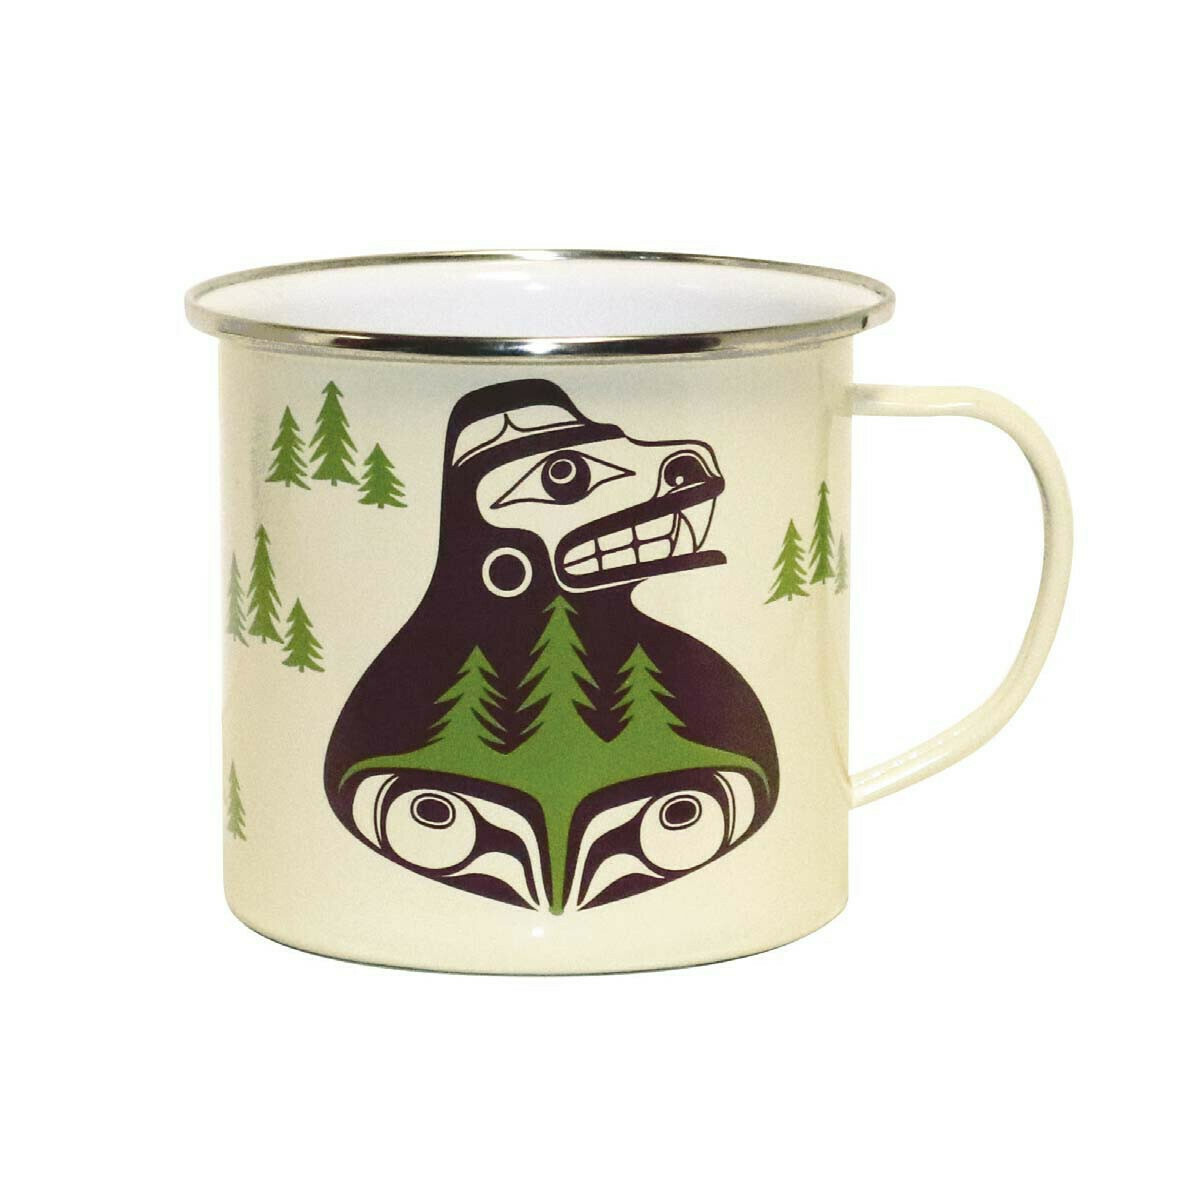 Enamel Mug - Bear The Tree Hugger